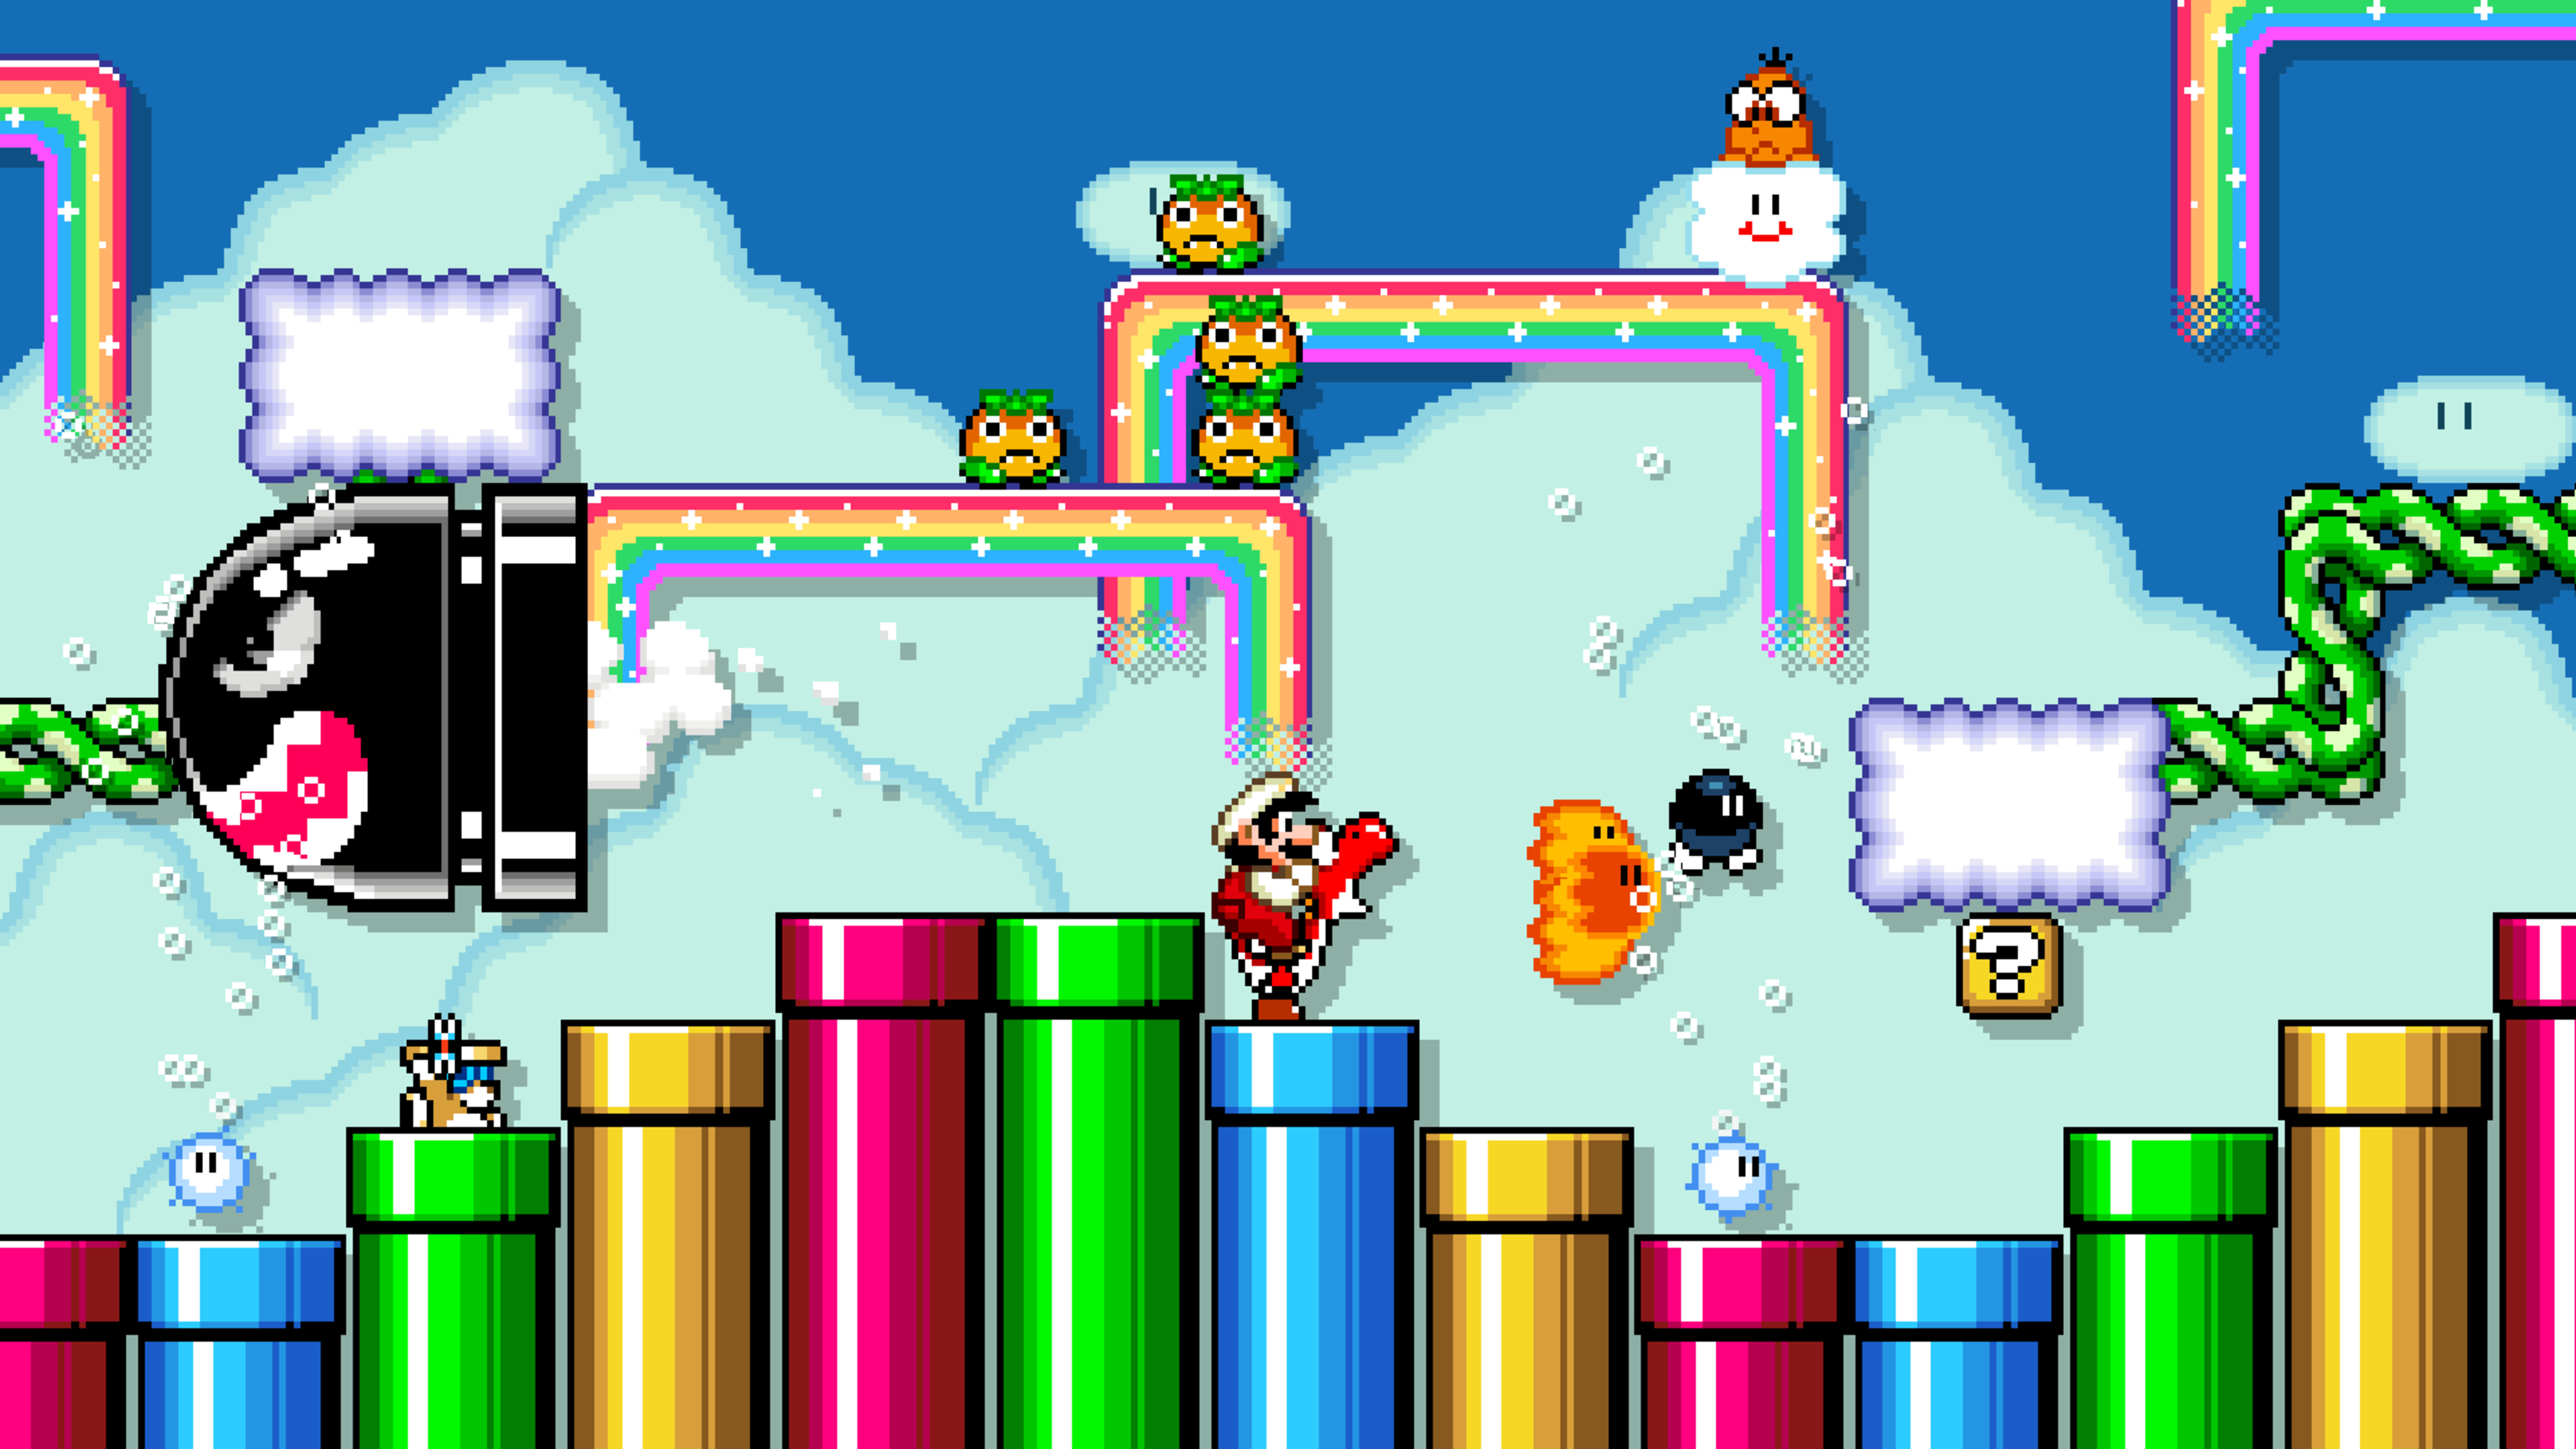 Fire Mario sitting on top of Fire Yoshi, who is standing on top of a sequence of vertical pipes while spitting fire